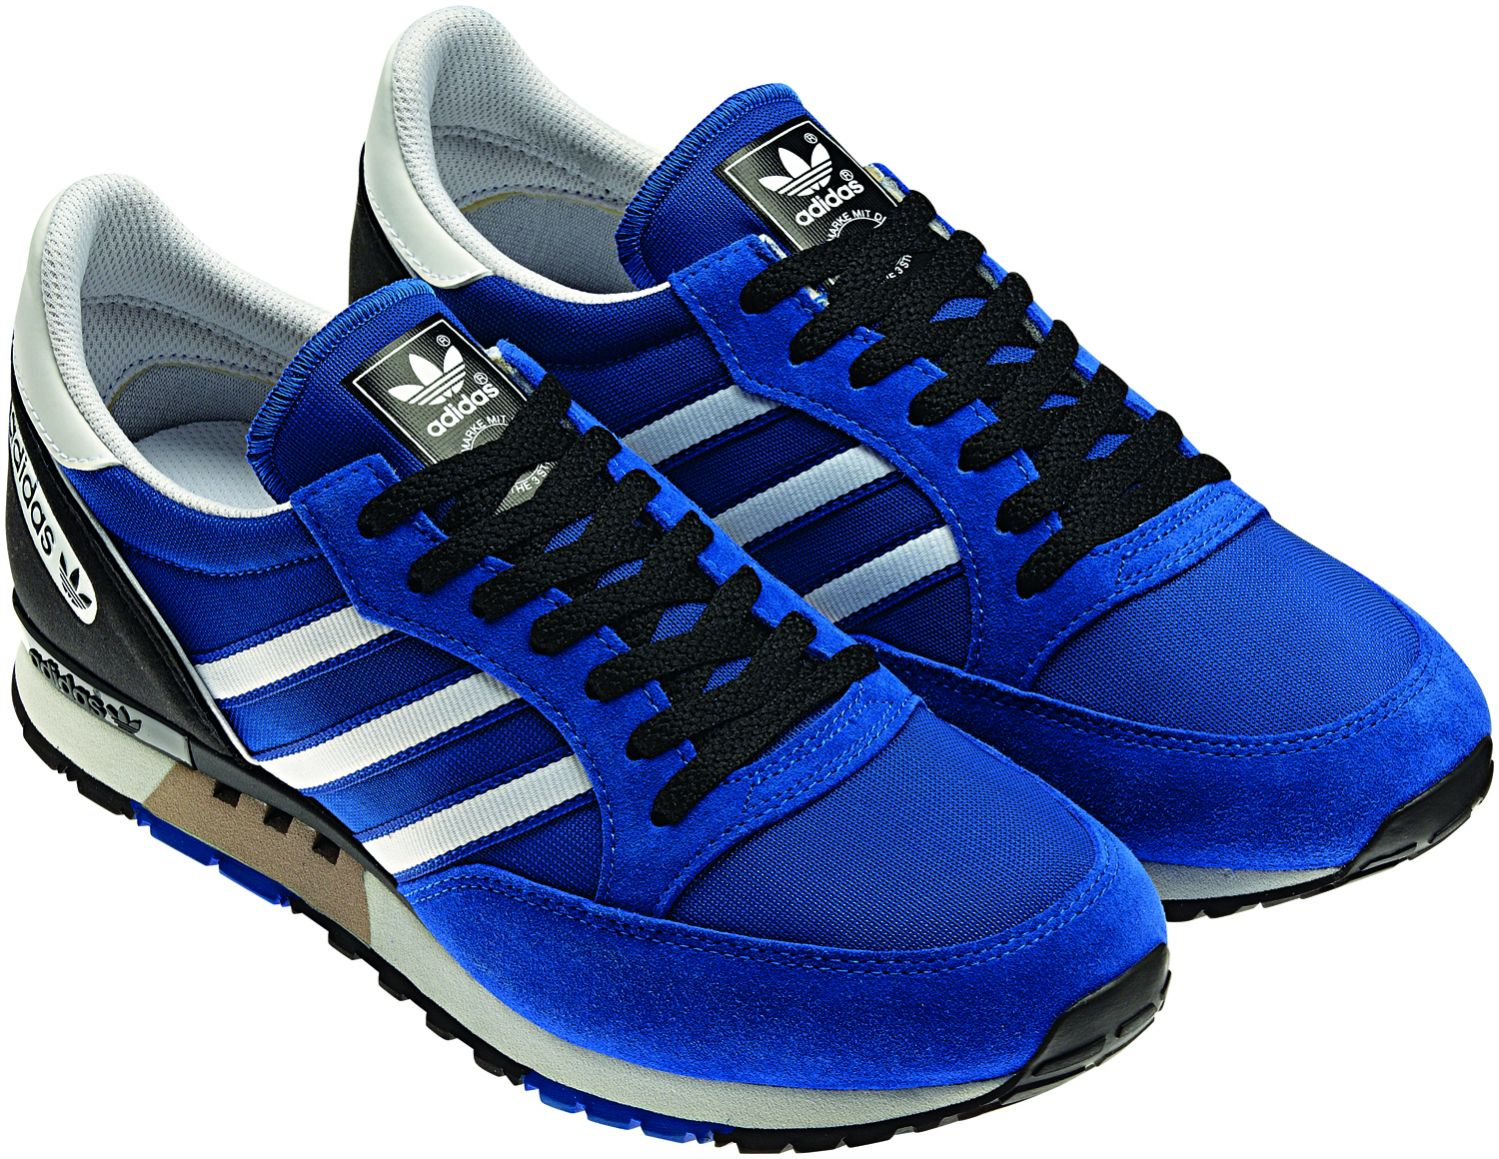 Throwback Thursday: These 80s Adidas Shoes Are Hip Again